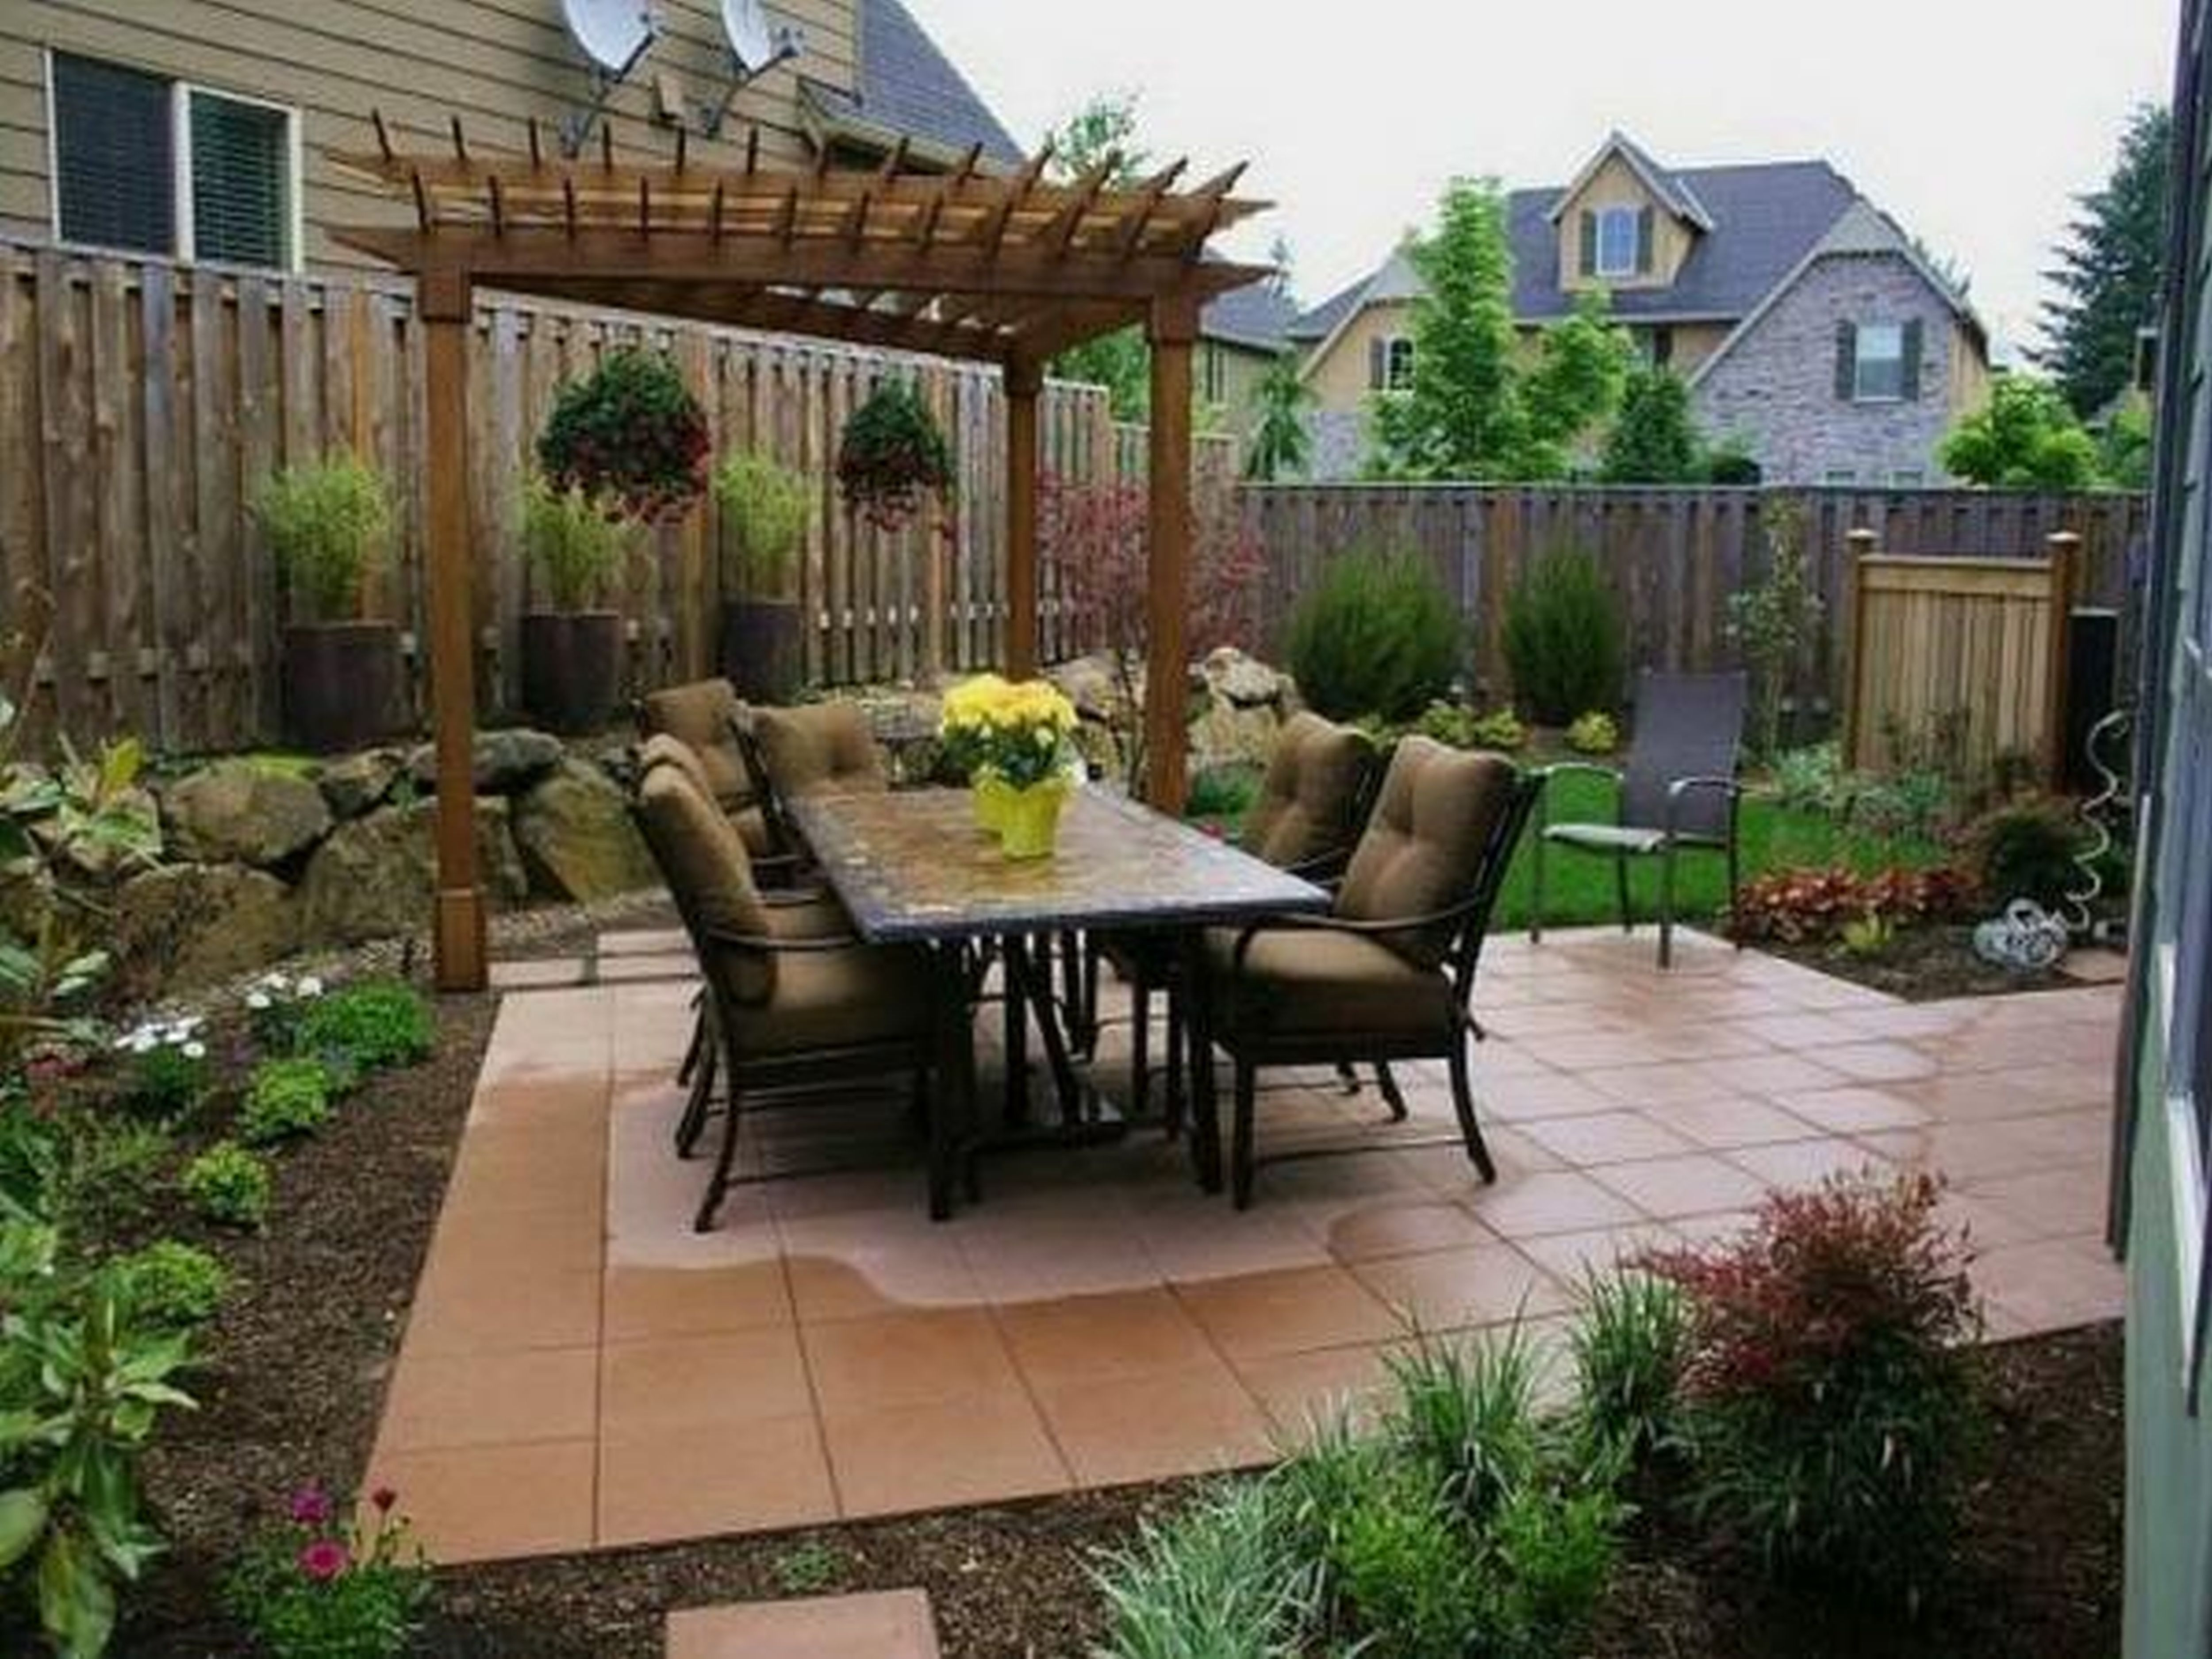 Cool Landscaping Ideas Long Narrow Garden For Front Yard ... on Long Narrow Backyard Landscaping Ideas id=13985